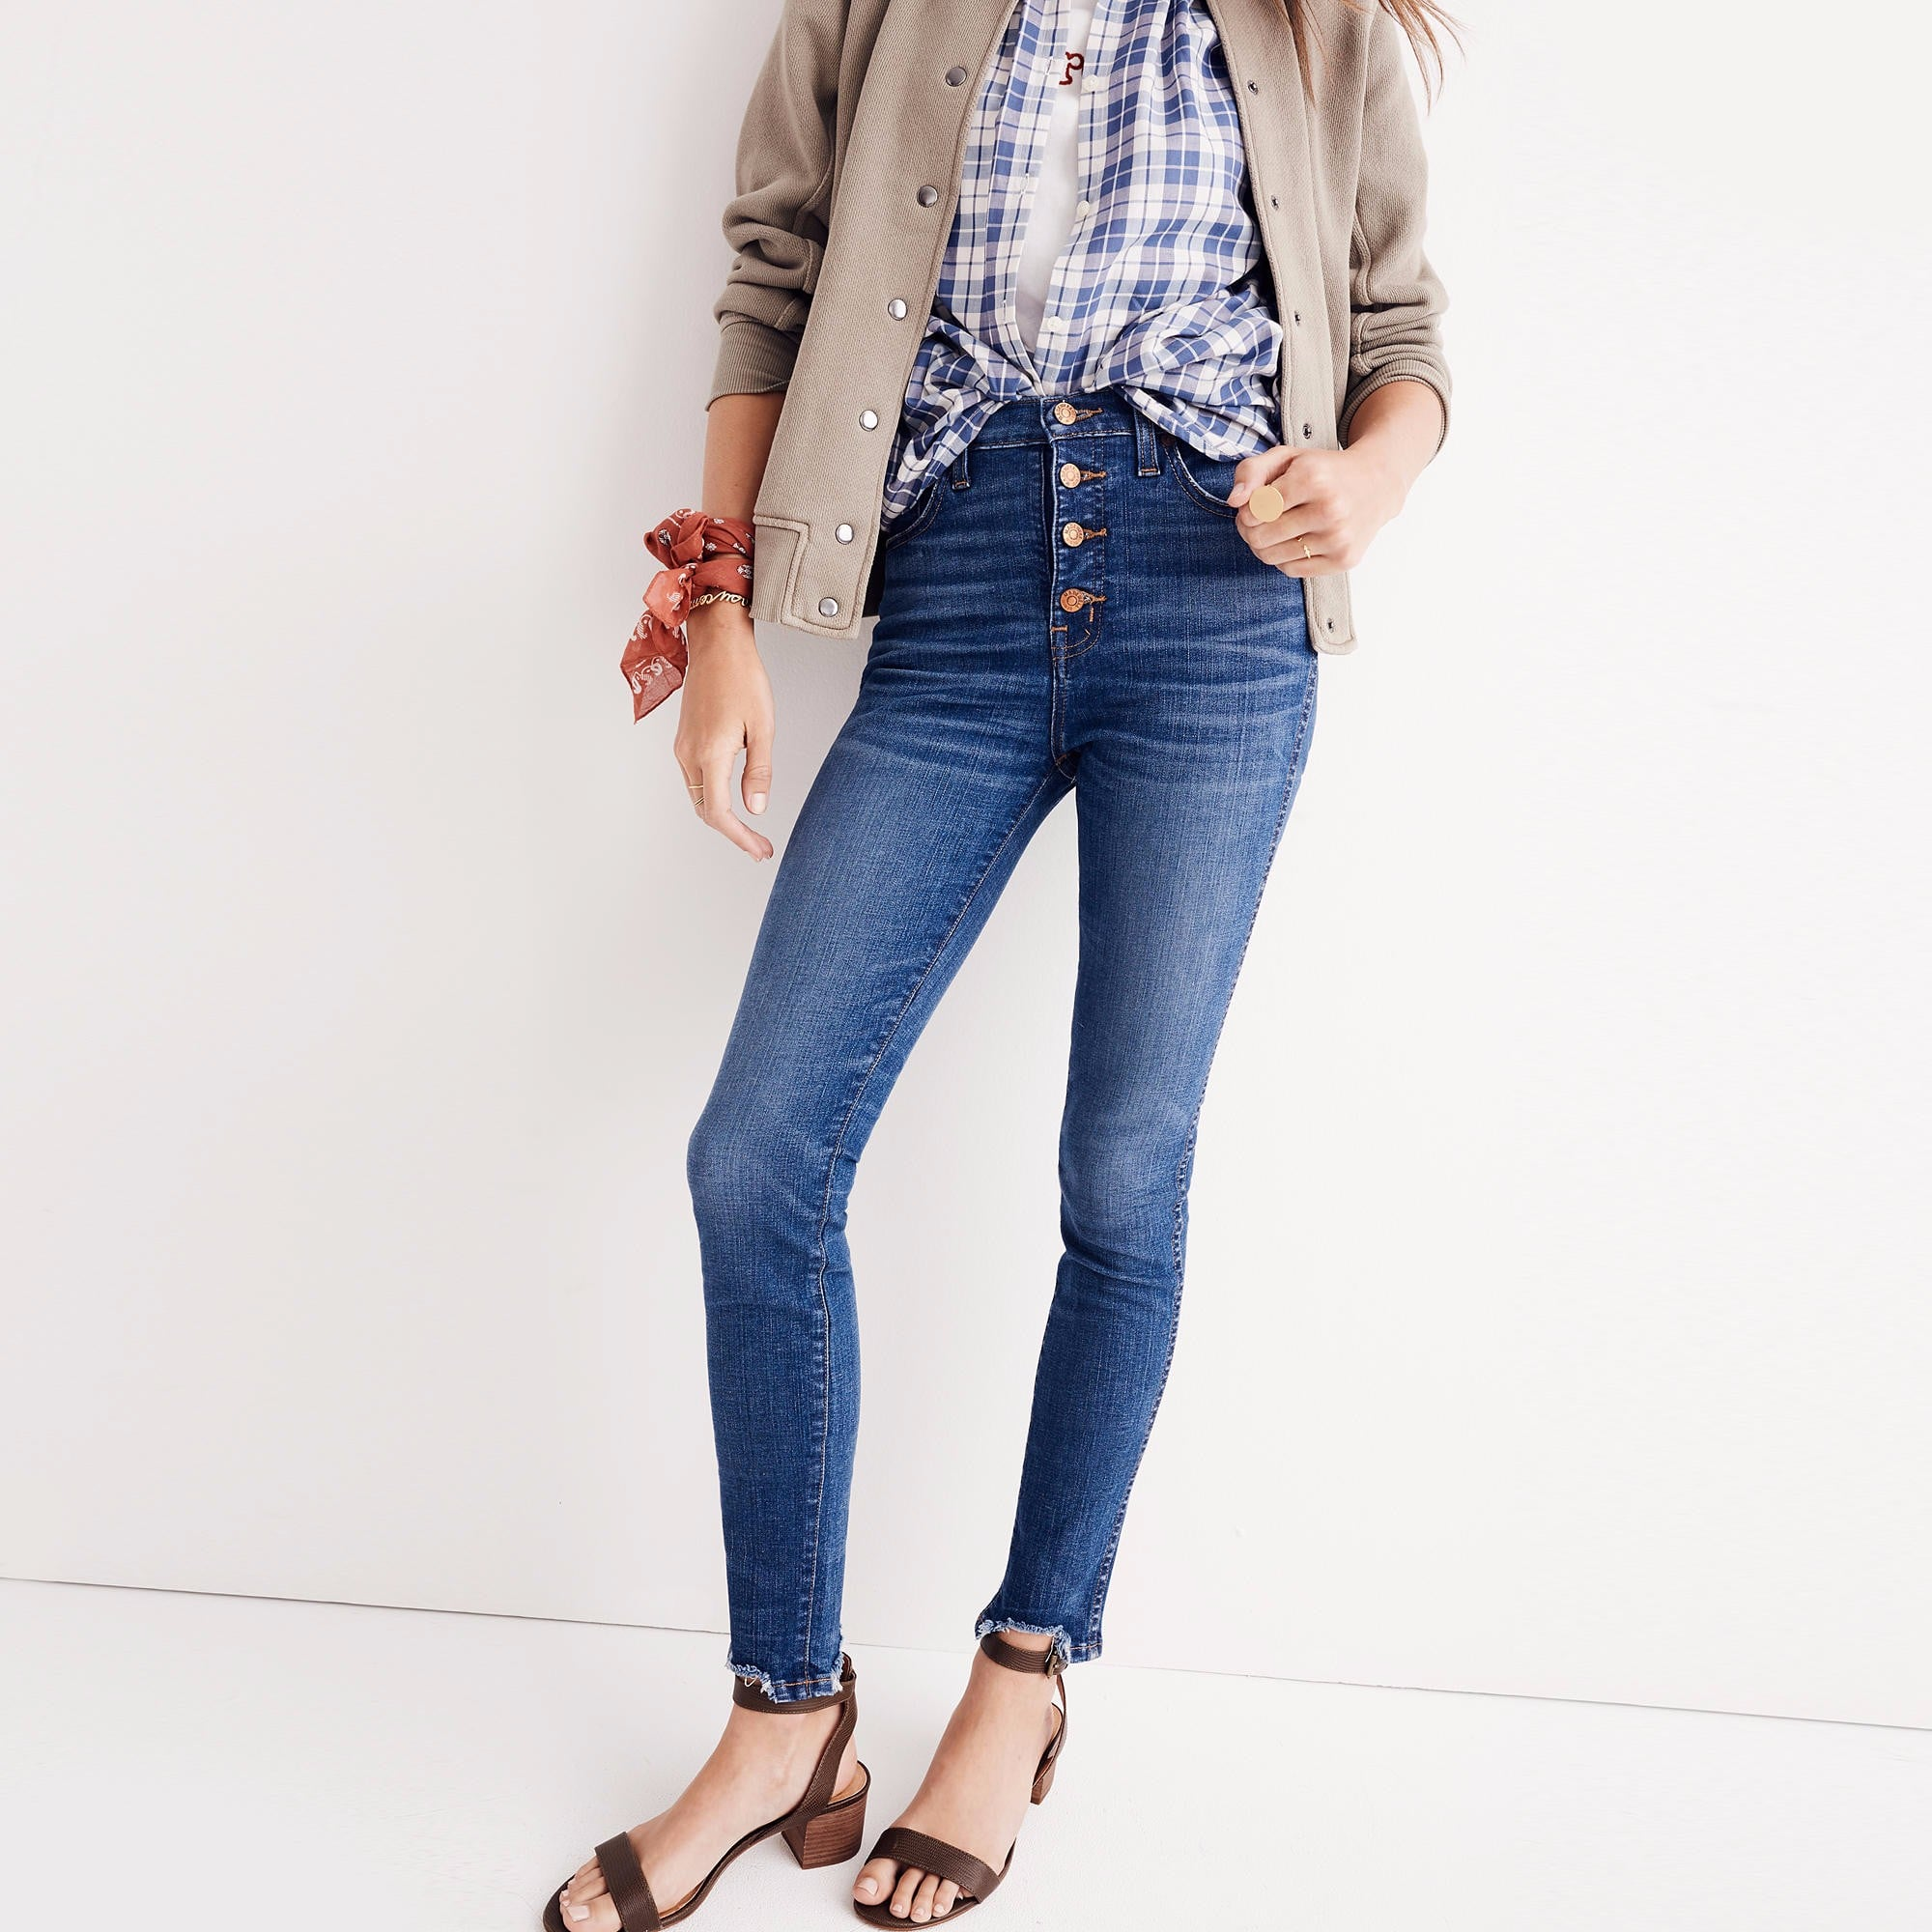 18b366c3114 Madewell Retro Crop Bootcut Jeans   Fall Outfit Ideas From Madewell    POPSUGAR Fashion Photo 4